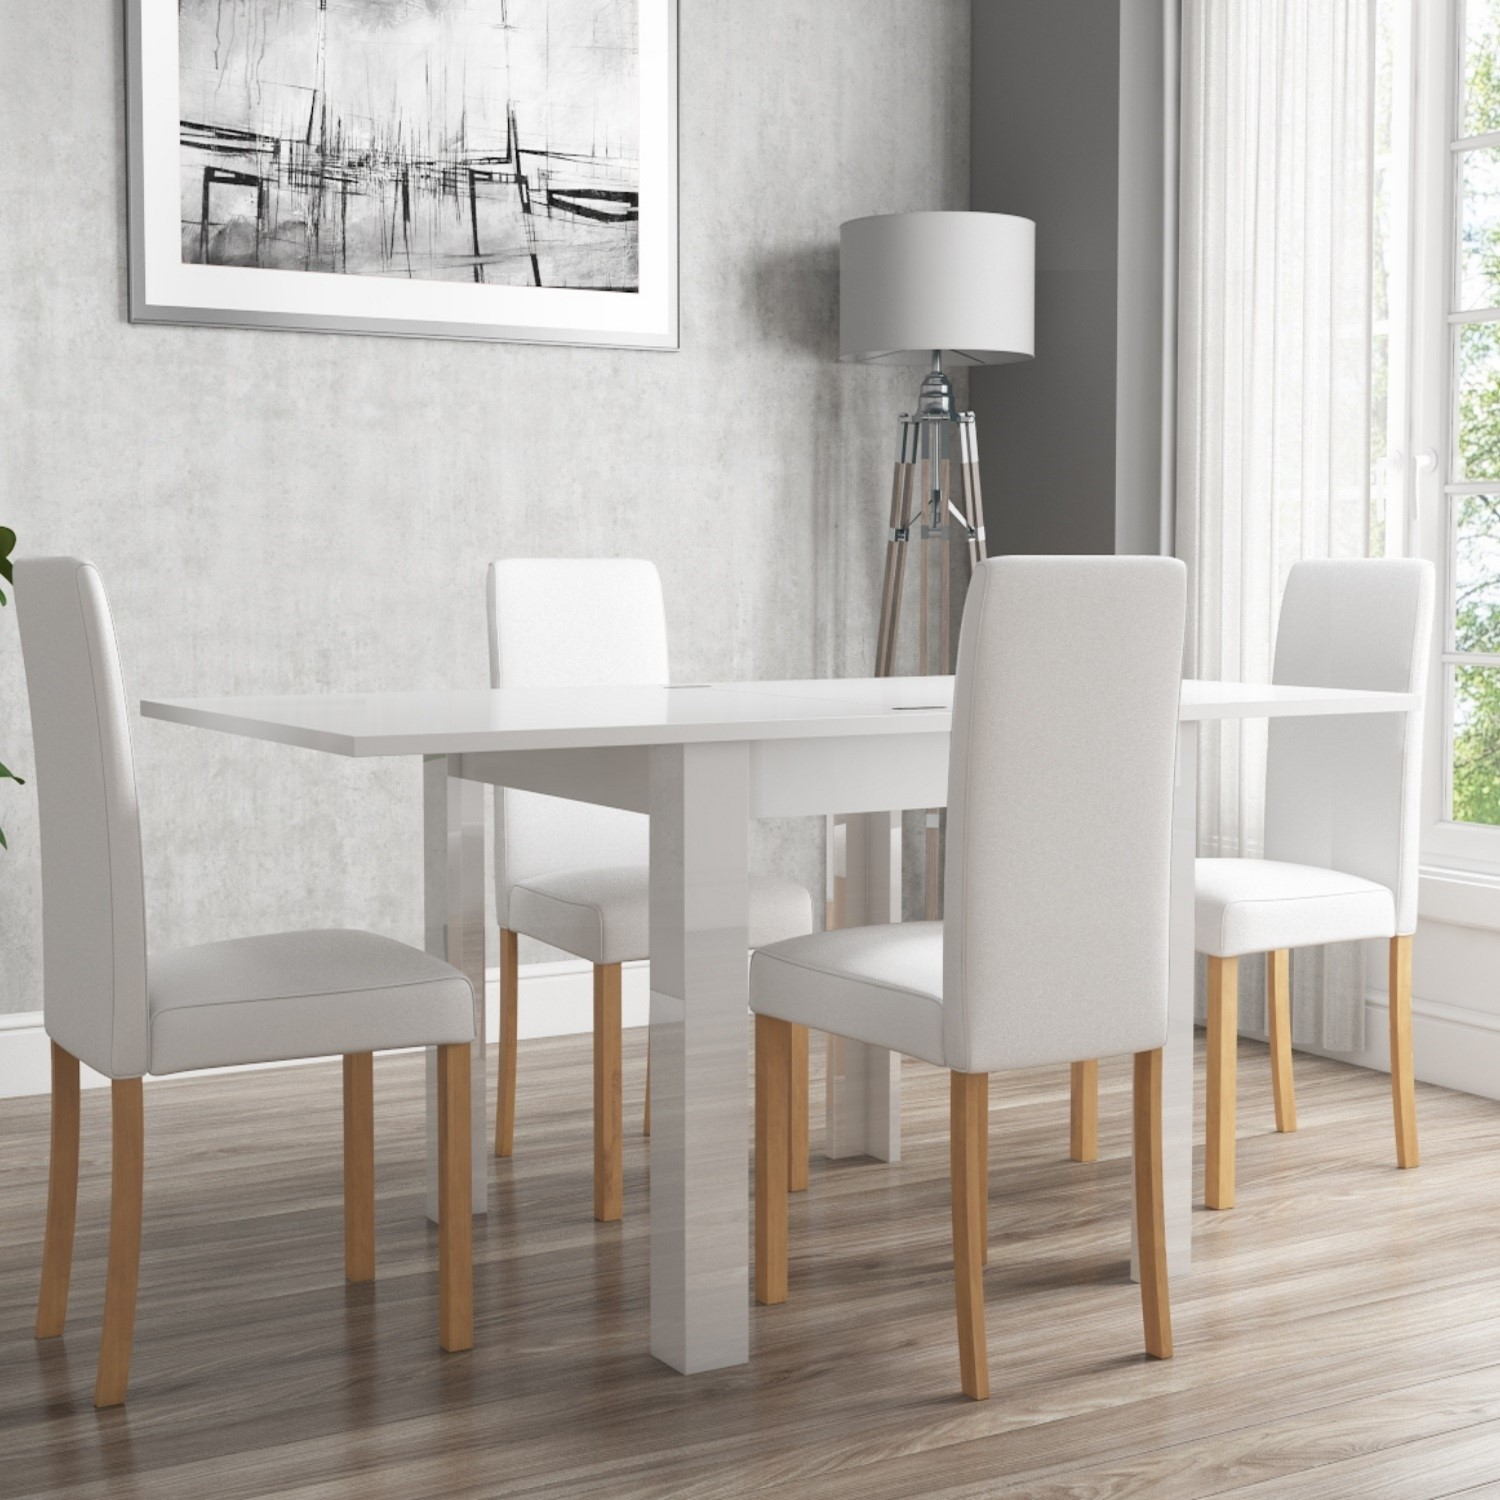 White High Gloss Flip Top Dining Table and 4 White Faux  : 3433359BUNVIV001697051Supersize from furniture123.co.uk size 700 x 700 jpeg 79kB